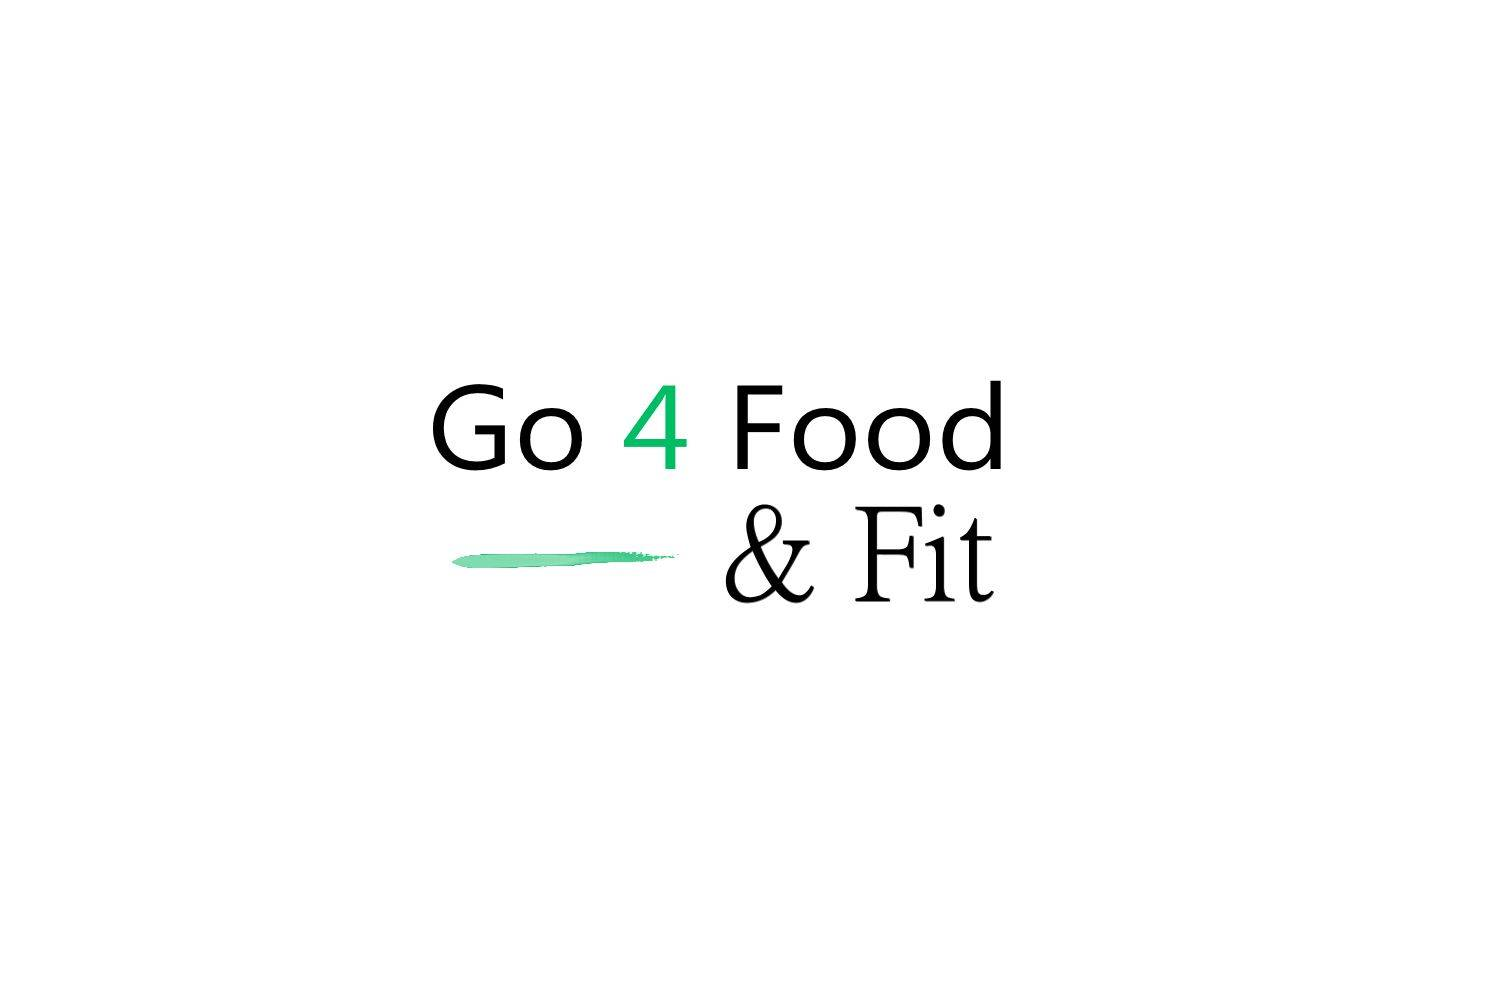 Go 4 Food & Fit_1